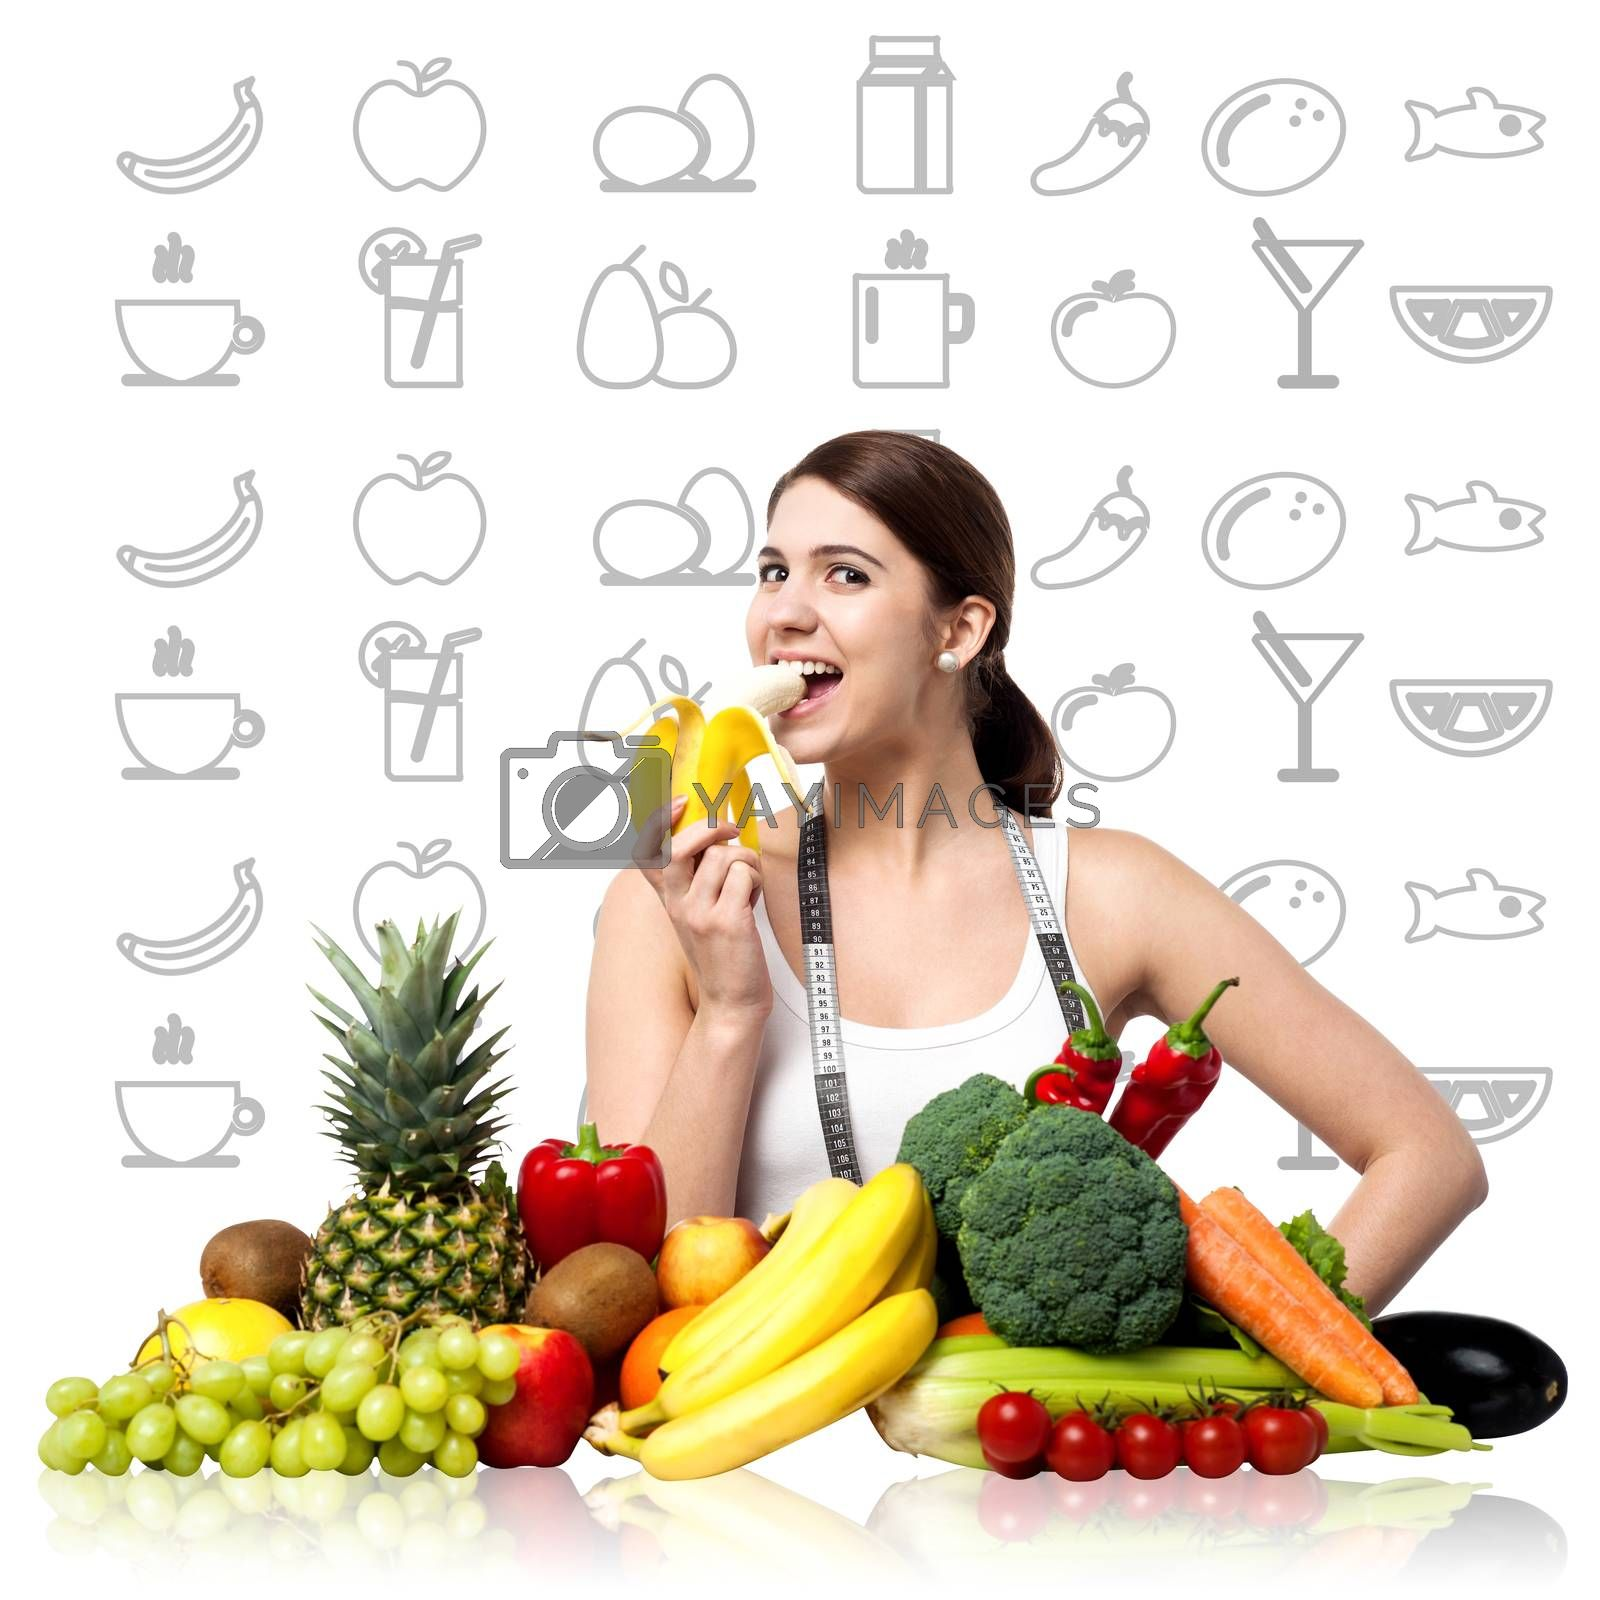 Young woman eating banana, stay fit